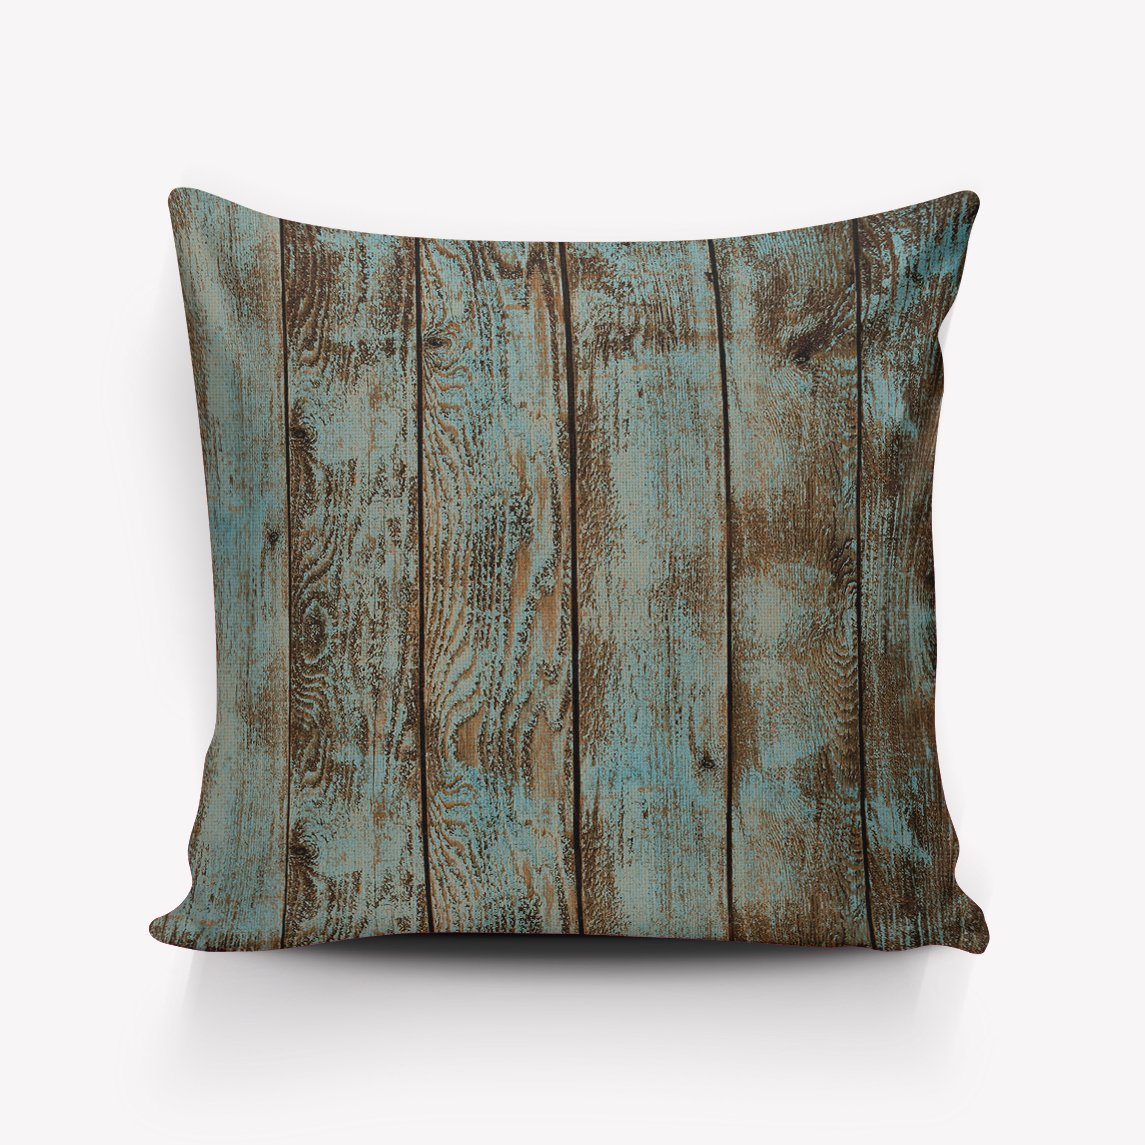 Rustic Wood Board Throw Pillow Indoor Cover Pillow Case For Home Sofa Car Office 20''x20''(Two Sides,Satin) by Rocking Giraffe (Image #1)